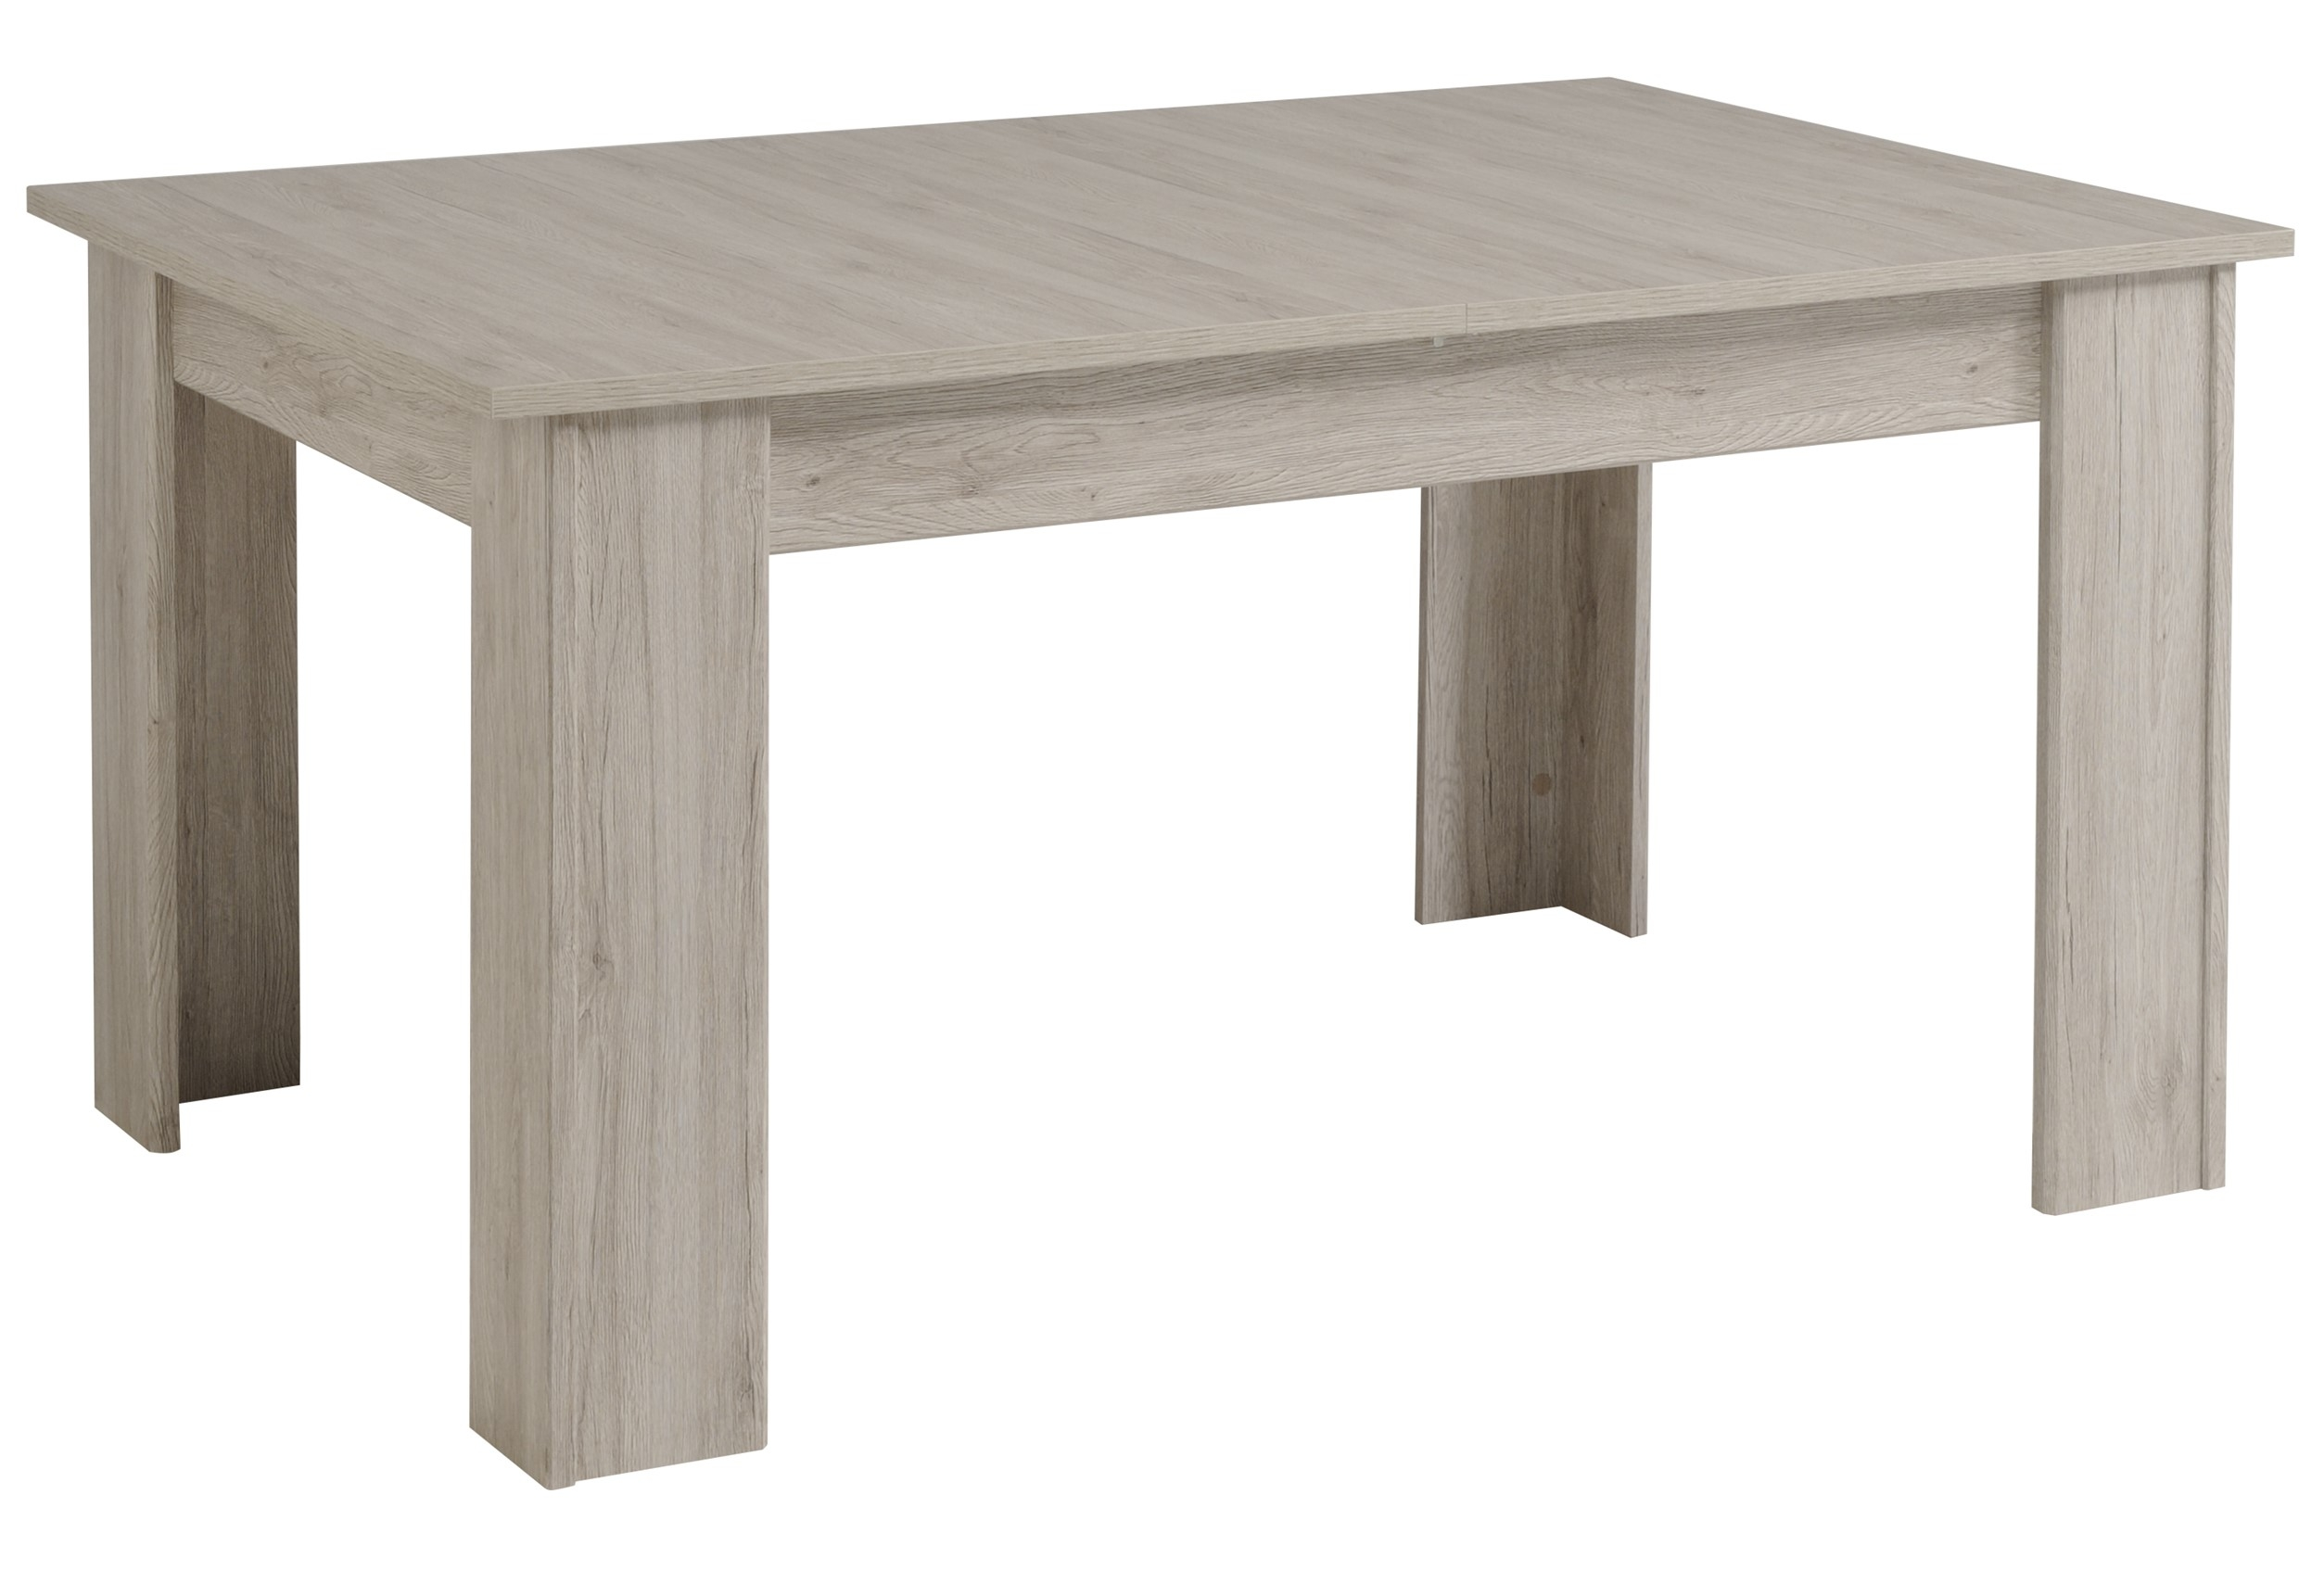 Table manger extensible ch ne gris muleo 155 190 cm for Table extensible gris clair